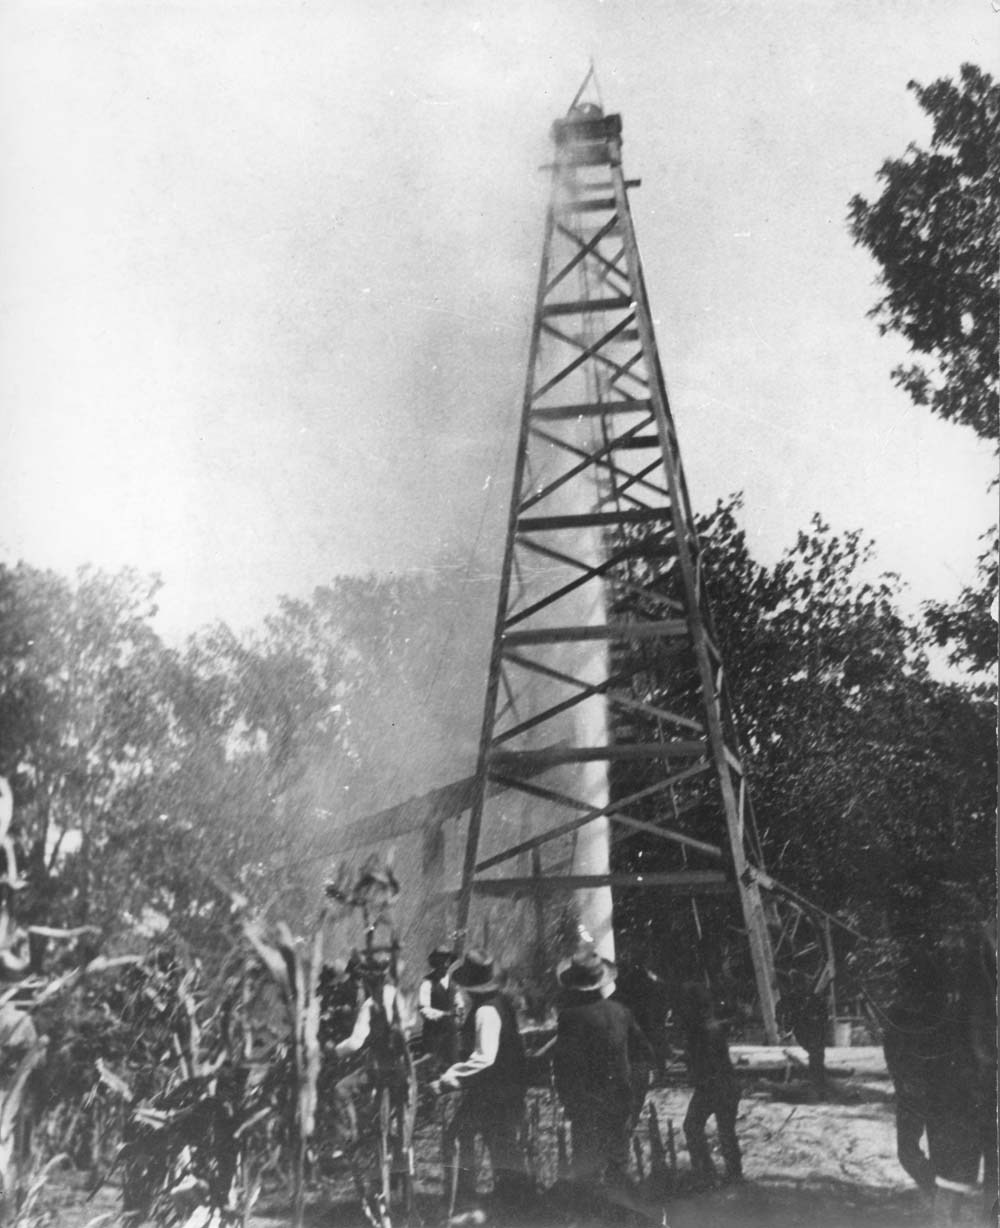 Norman #1, a discovery oil well in the Mid-continent field near Neodesha, Kansas